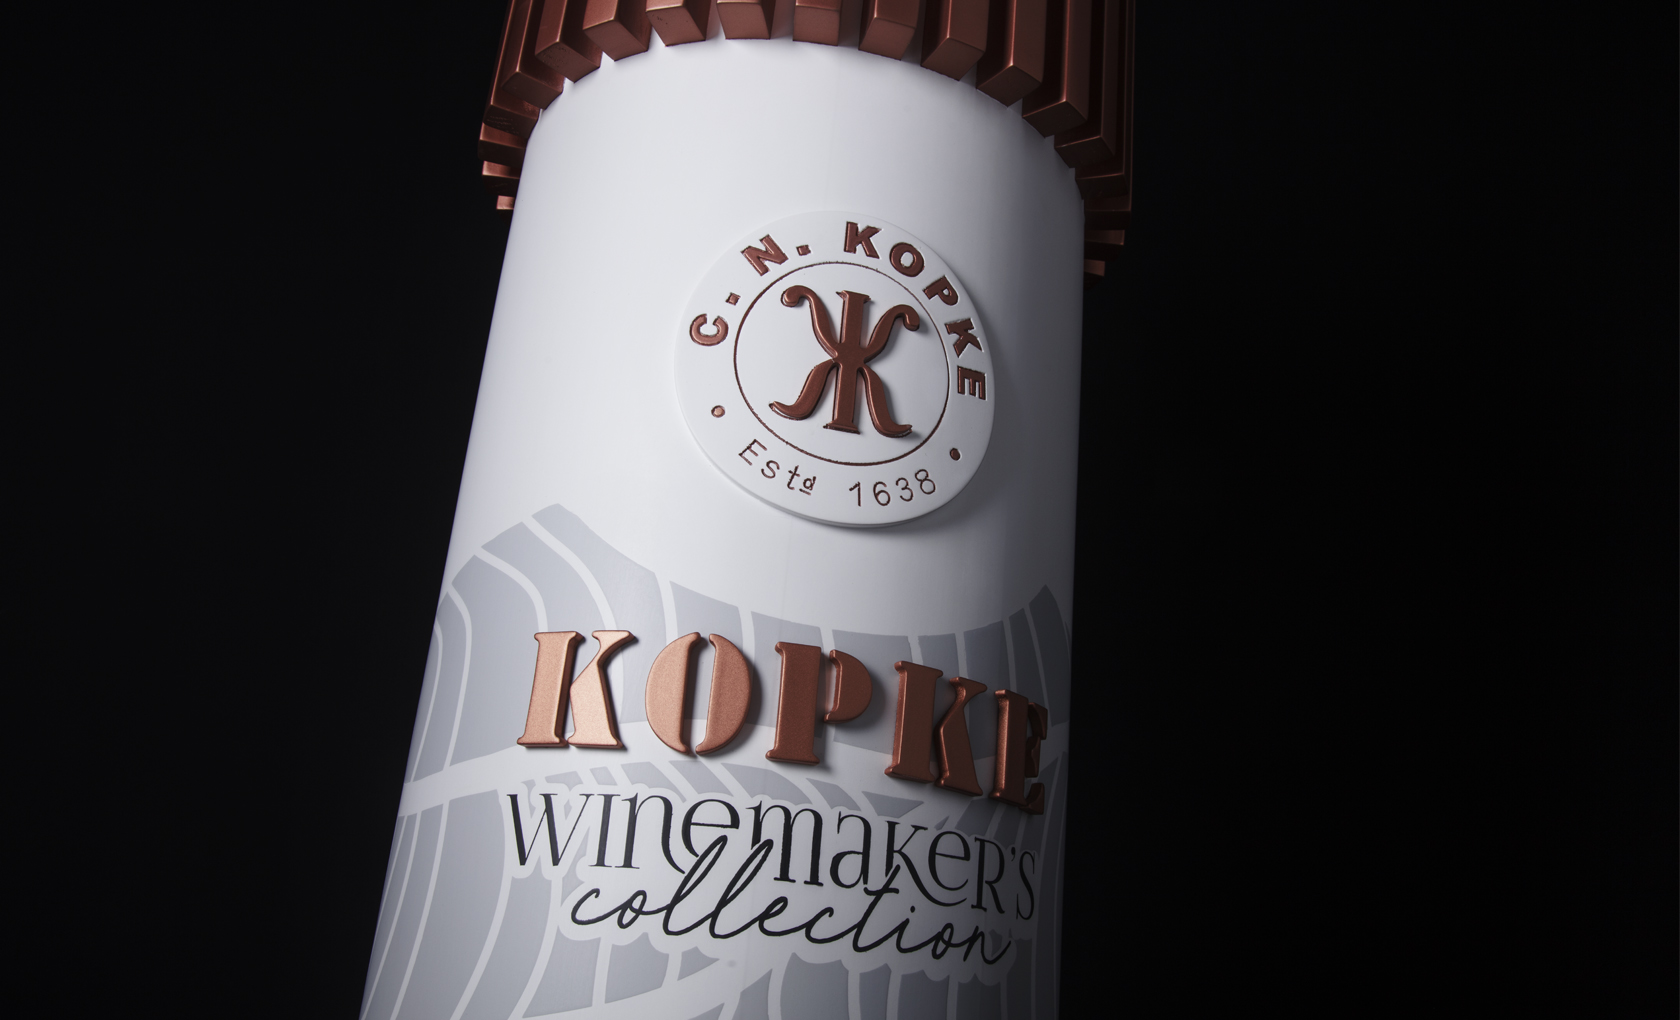 kOPKE - WINEMAKER´S COLLECTION